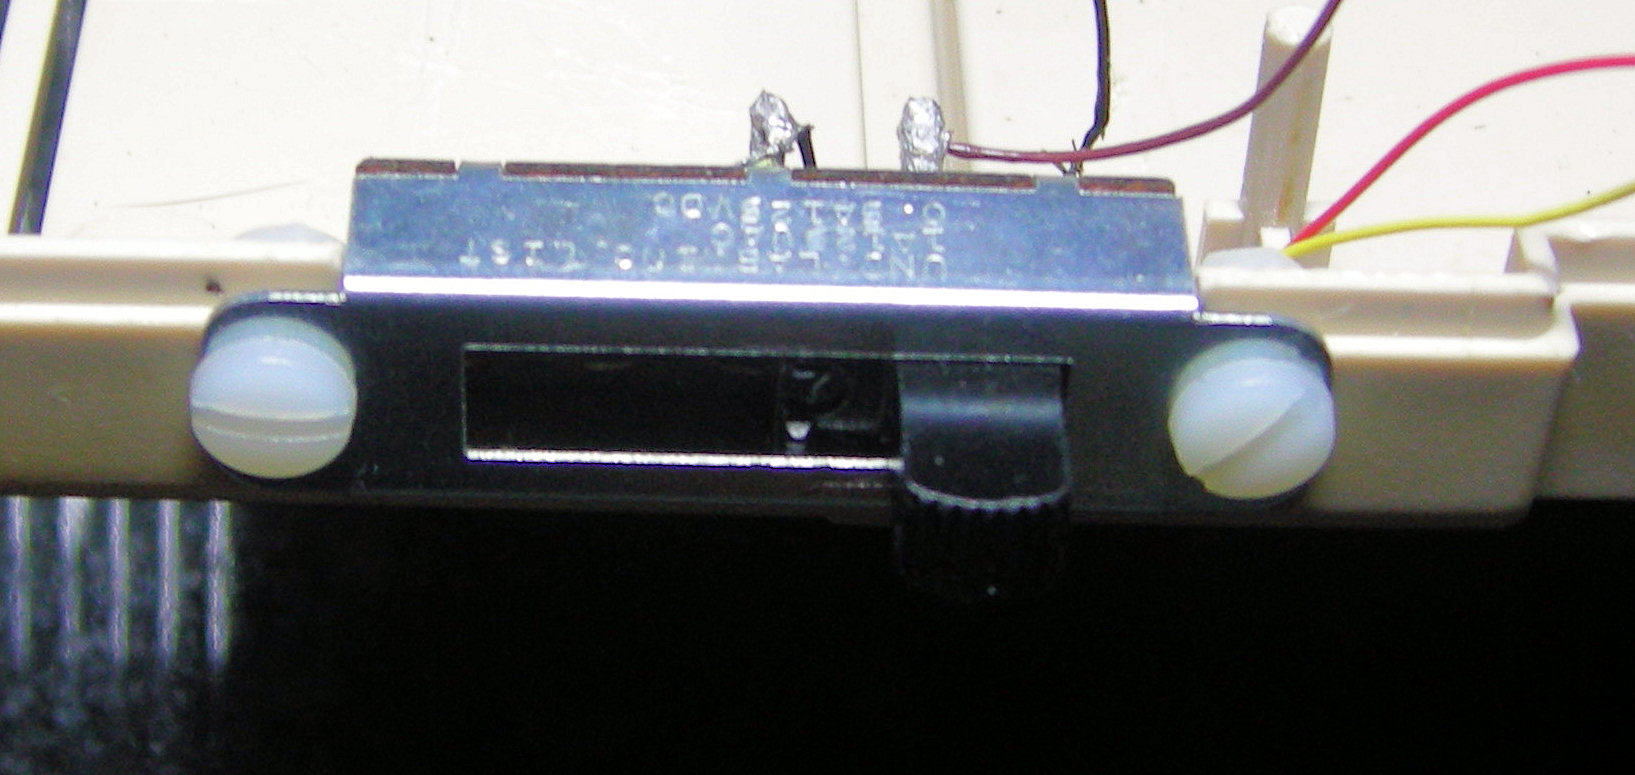 Outside view, showing switch mounting position and screws